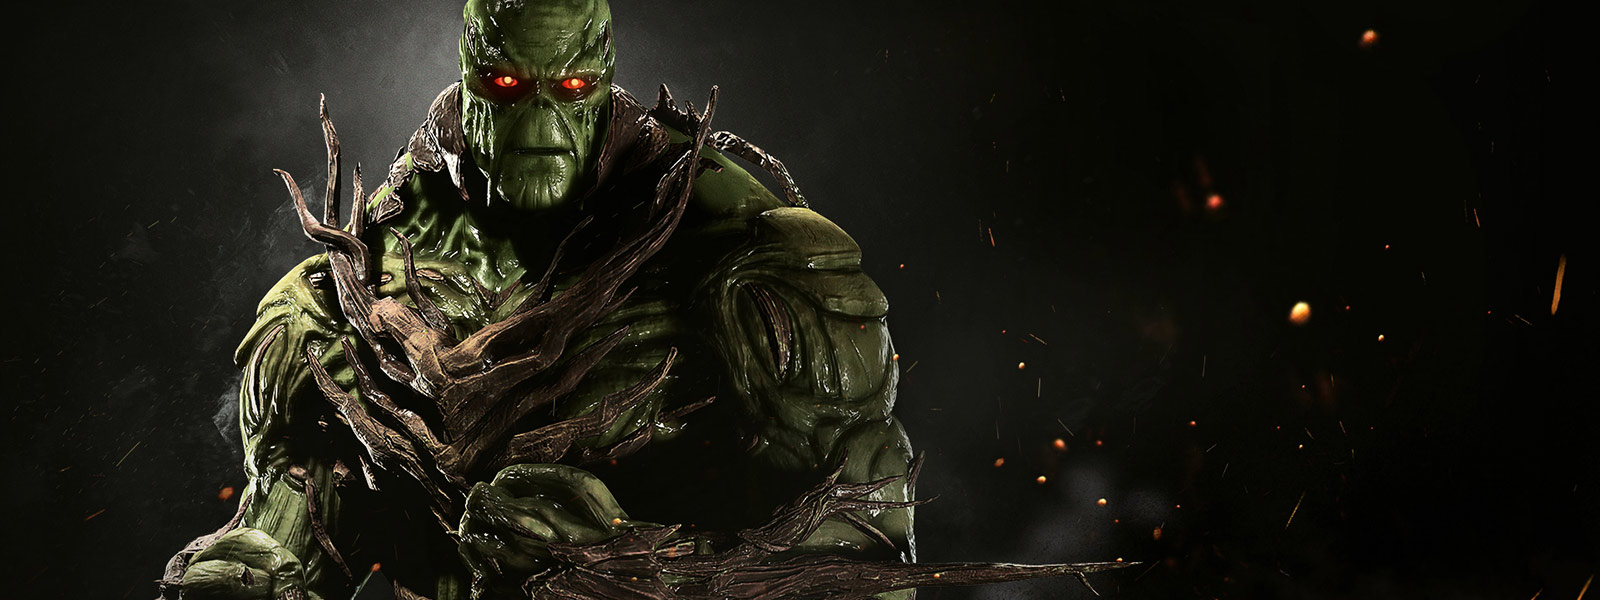 Swamp thing i Injustice 2